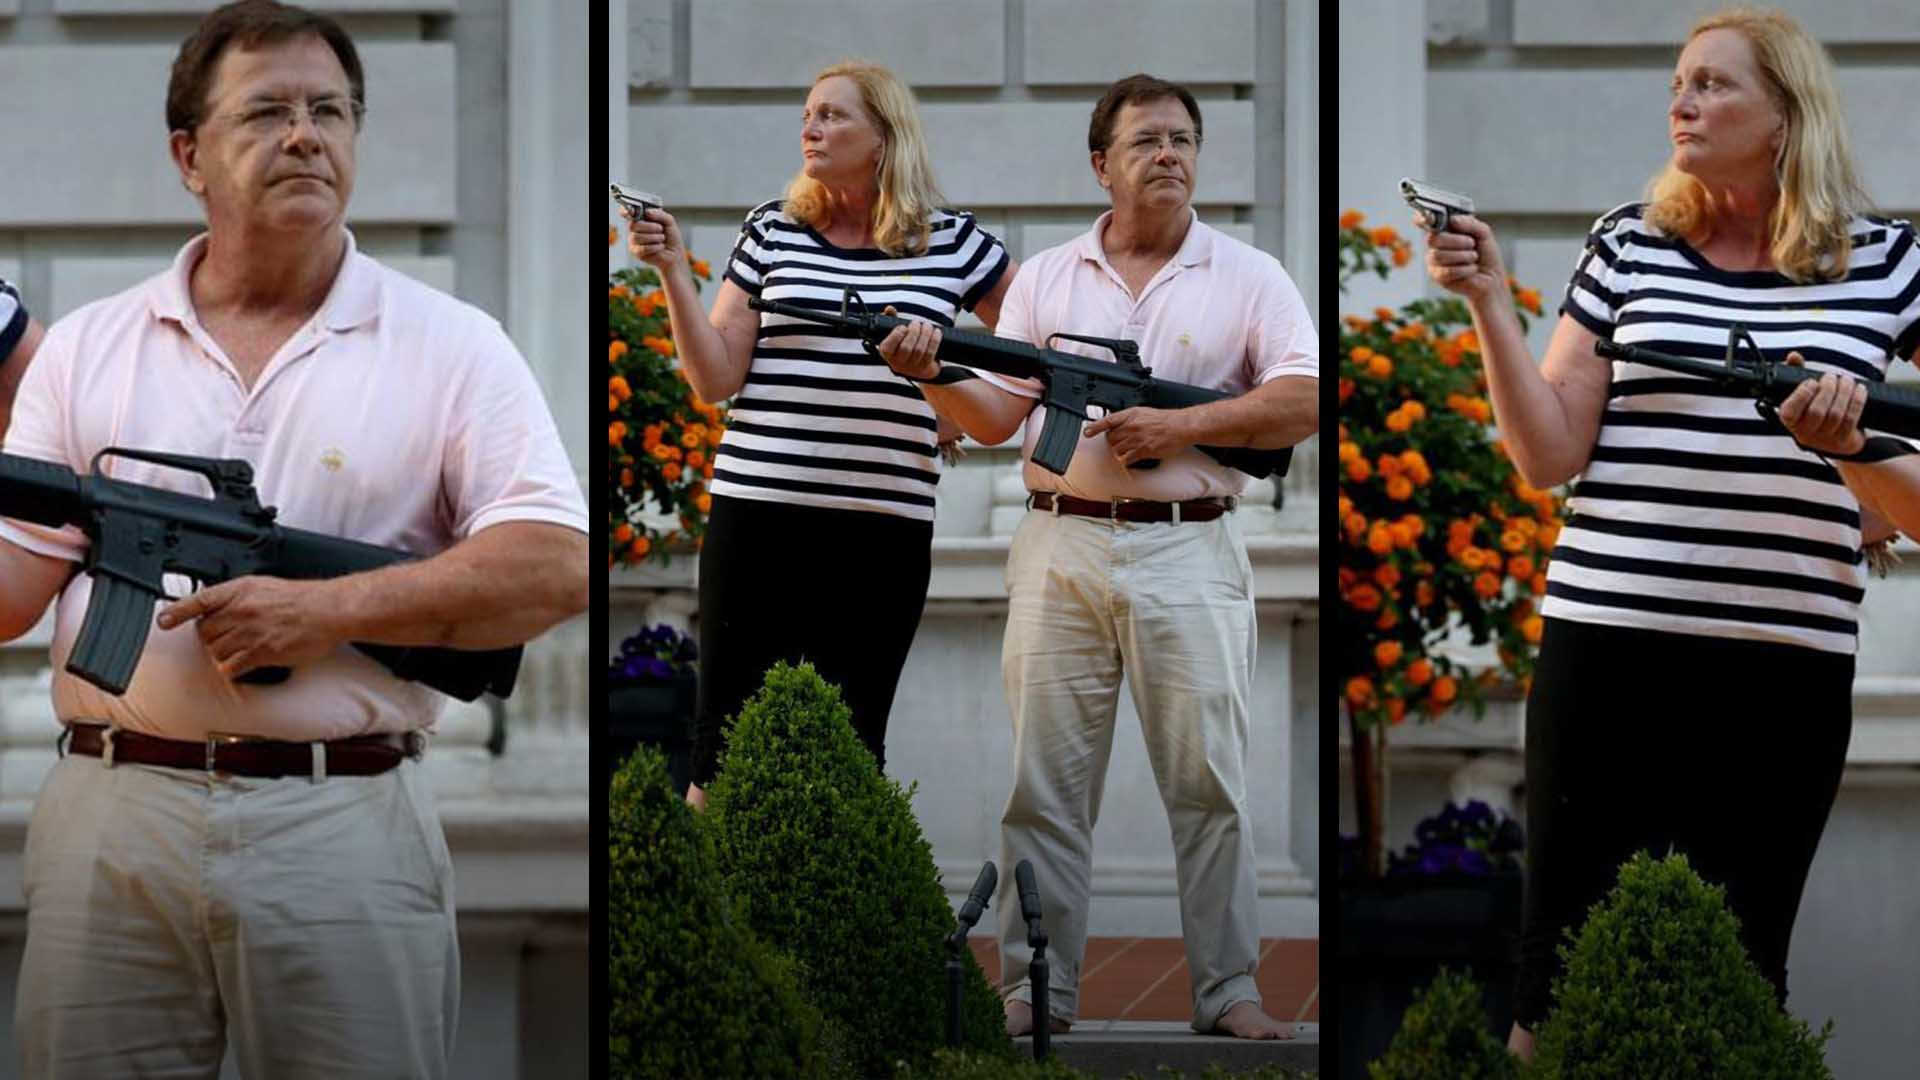 St. Louis Couple Wave Guns at Protesters